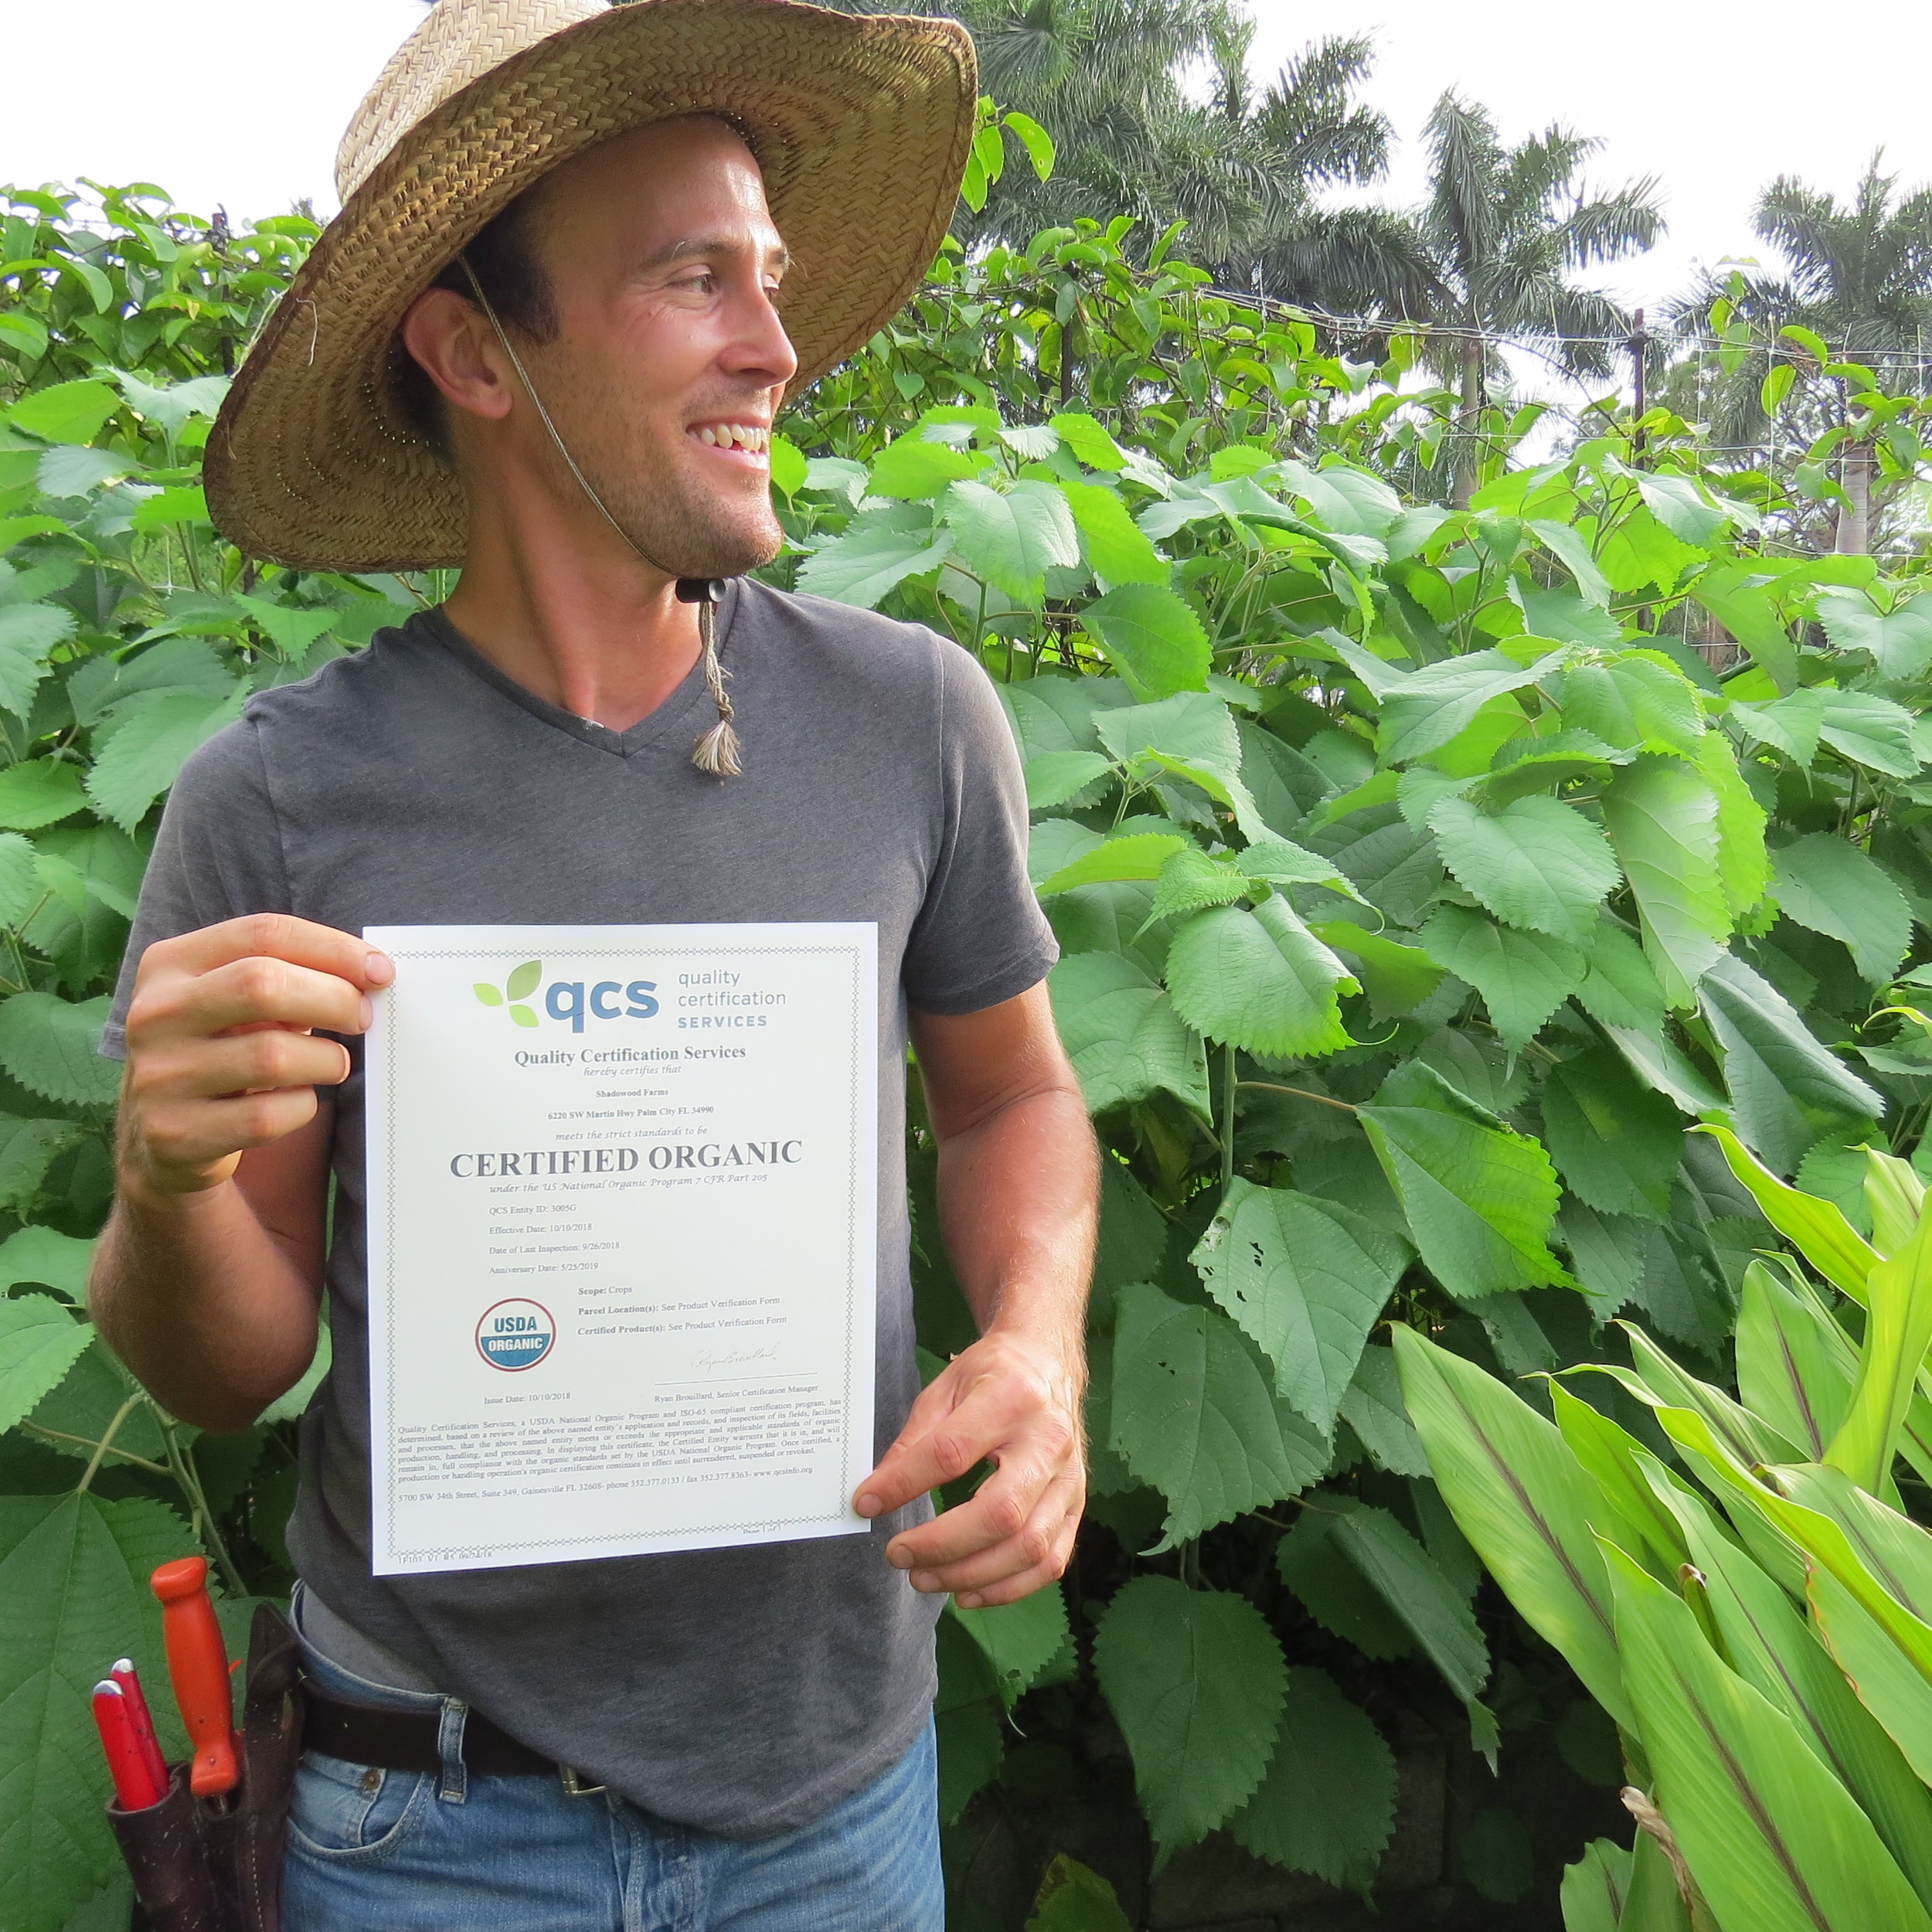 Nathaniel Fenton with our Shadowood Farm certificate.